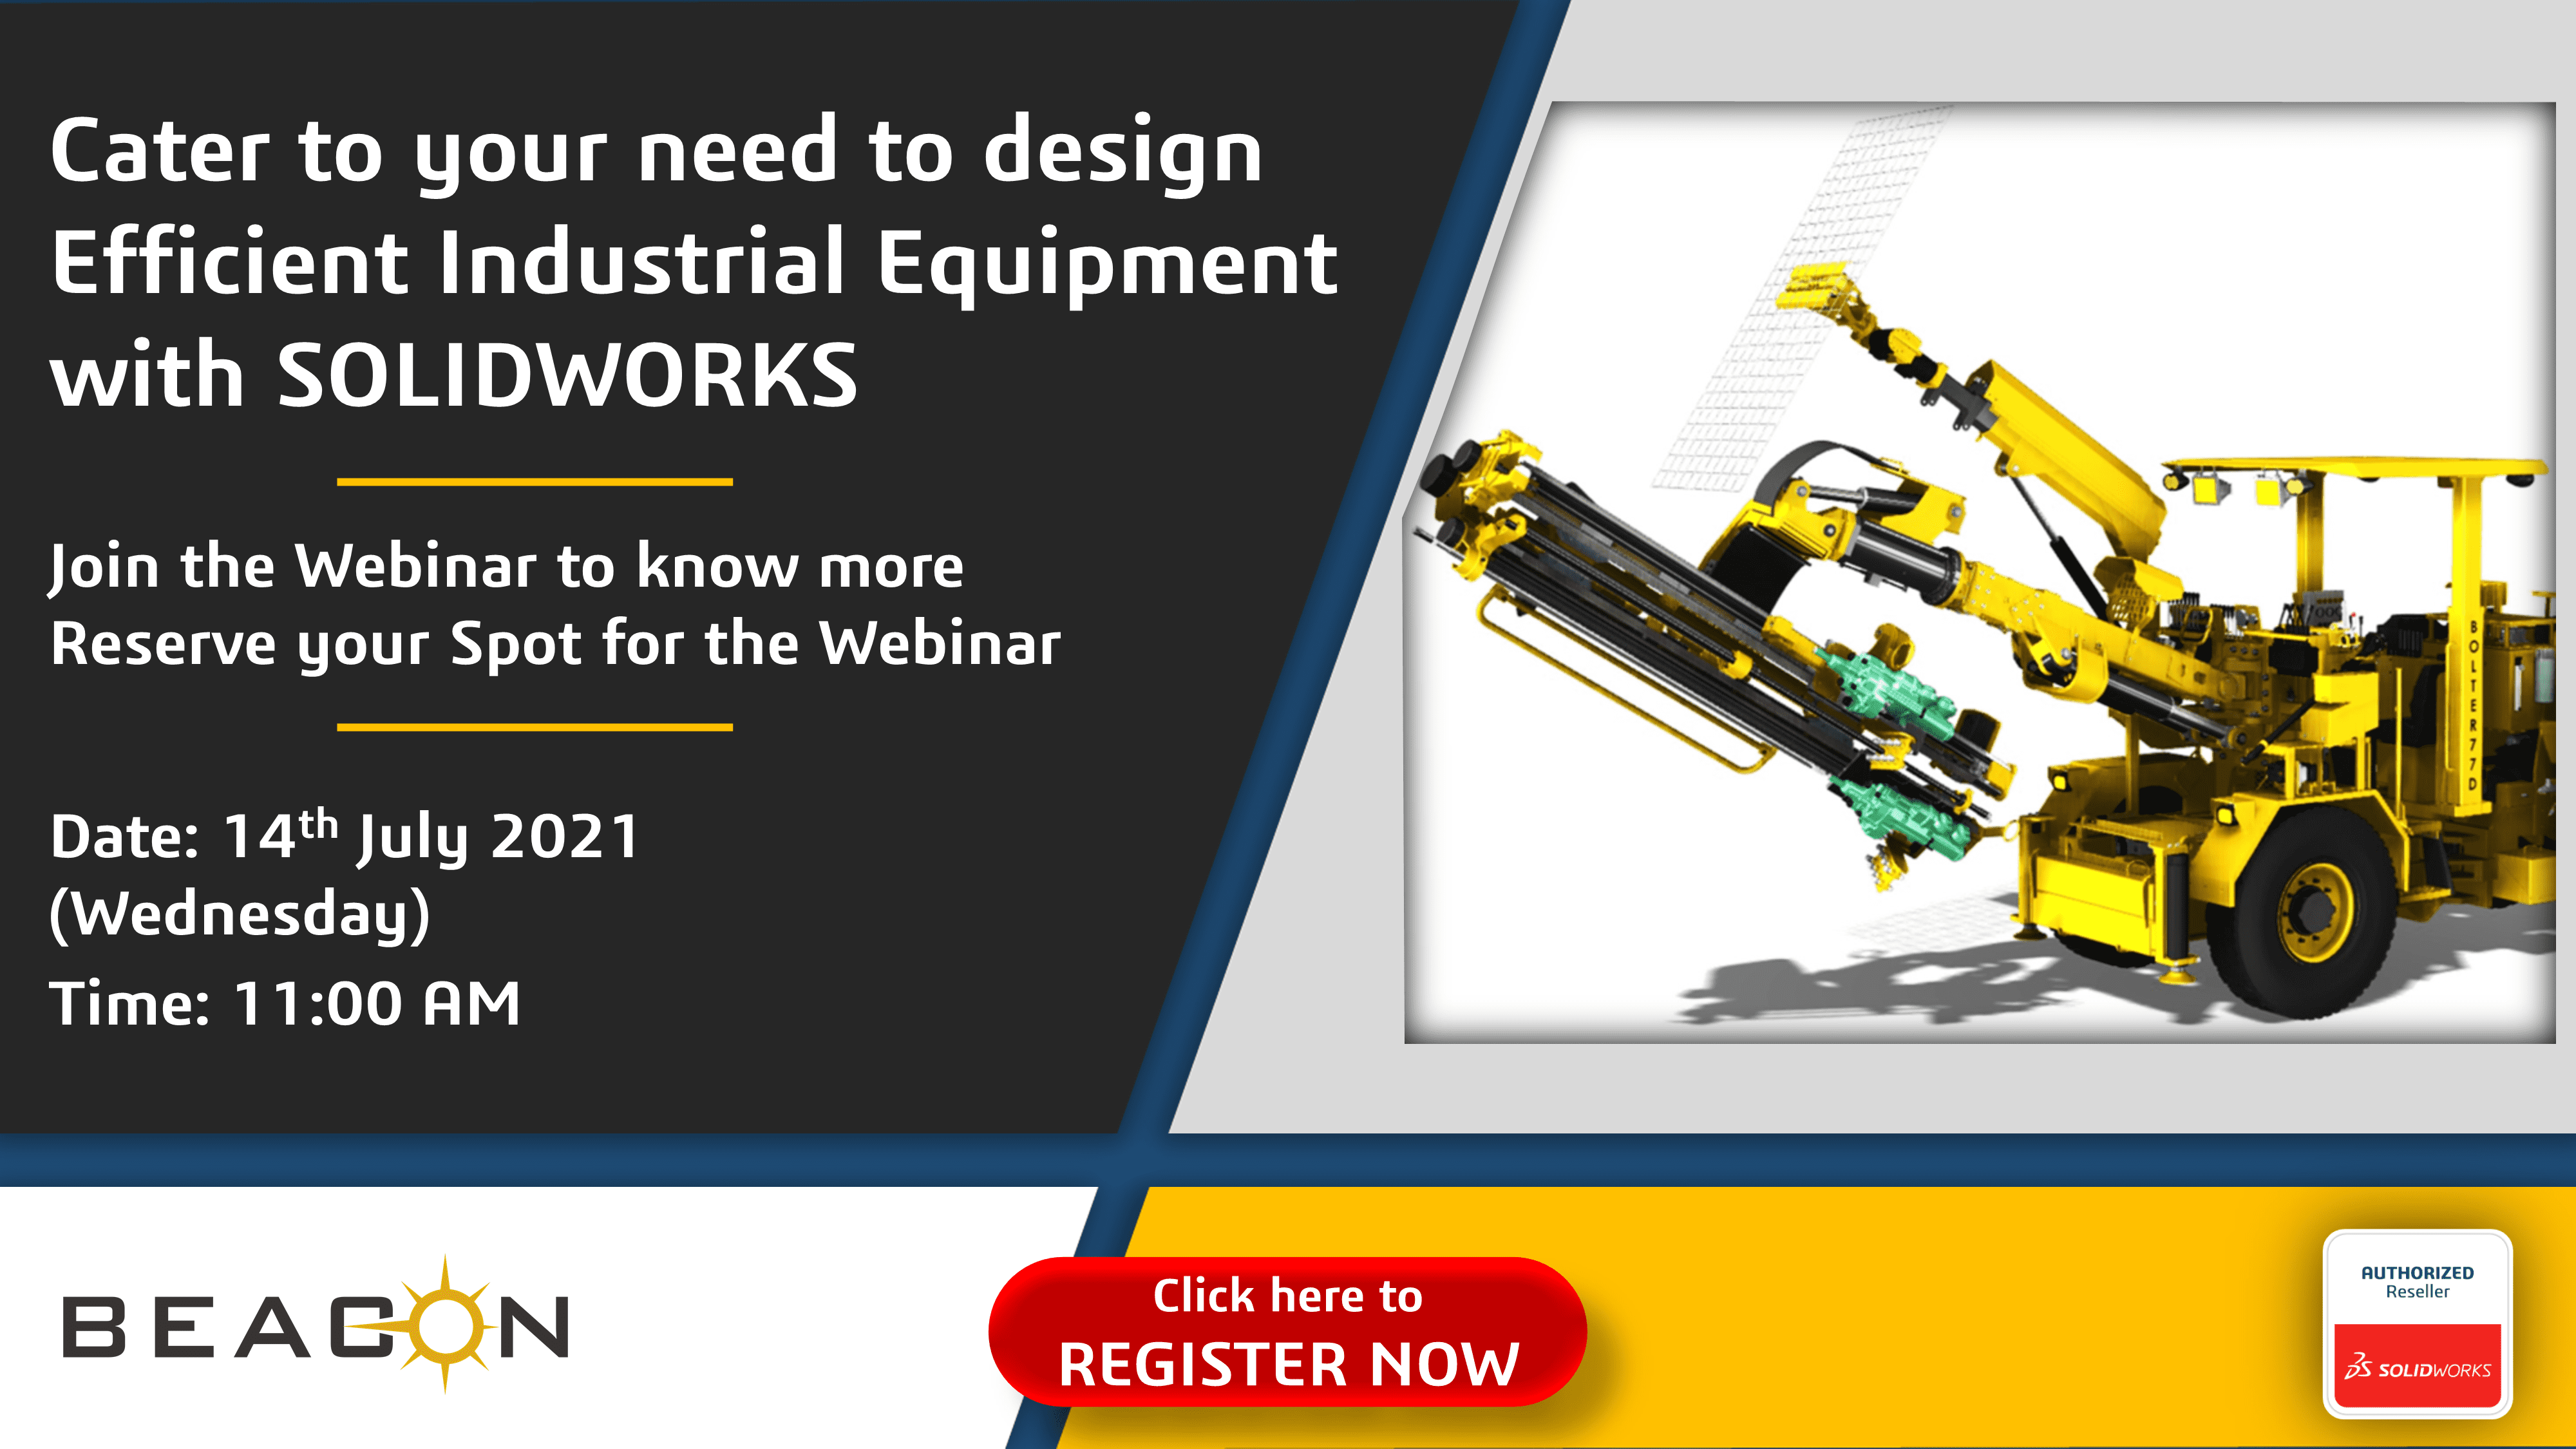 Cater to your need to design Efficient Industrial Equipment with SOLIDWORKS